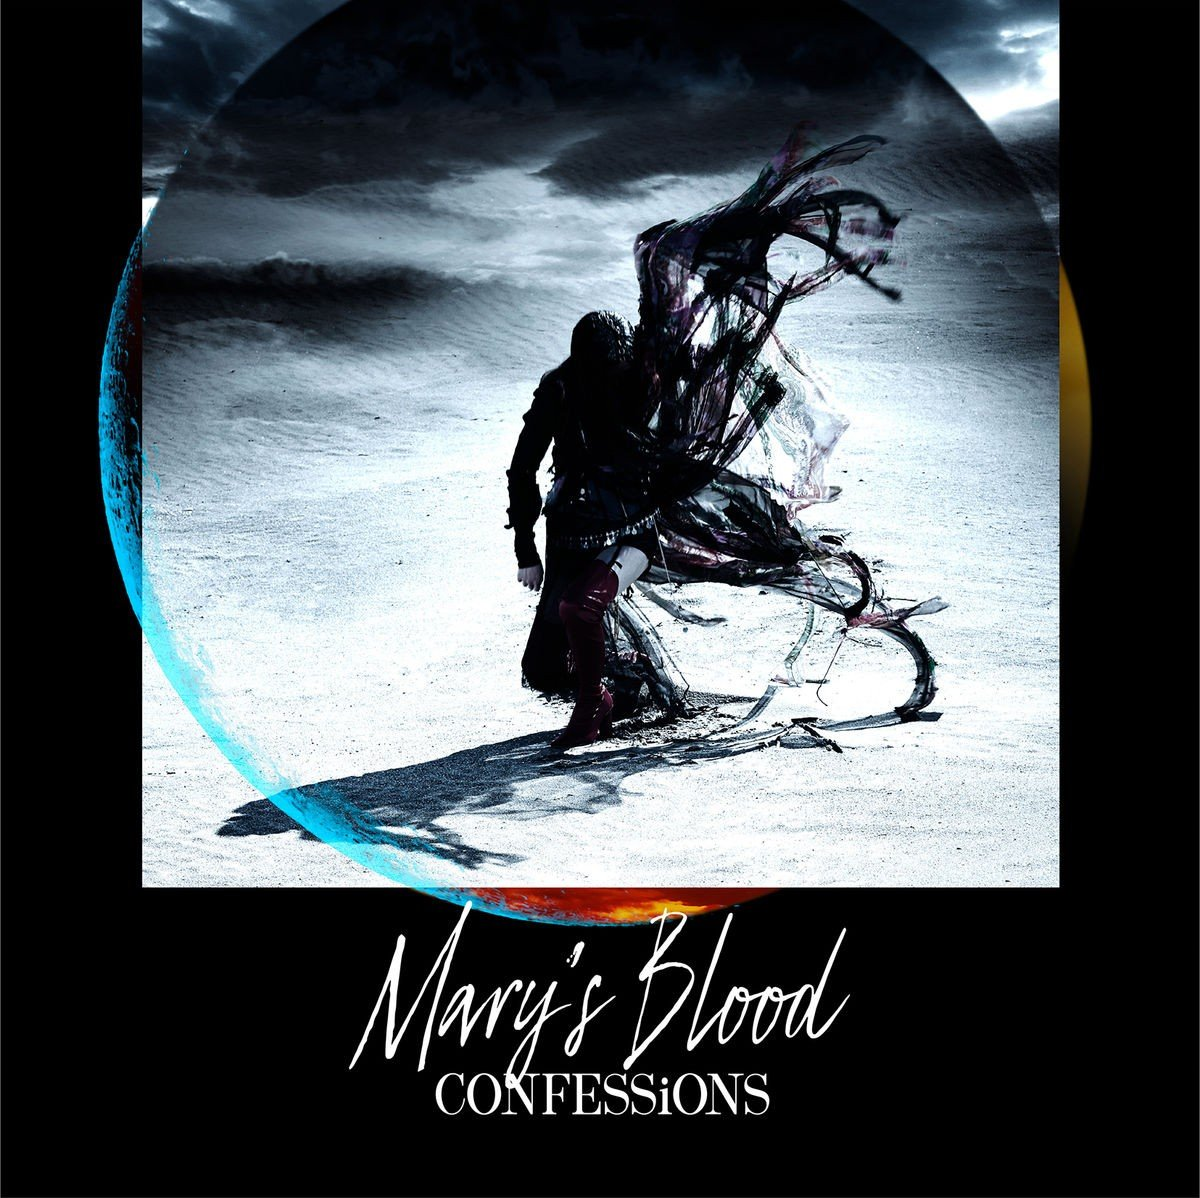 Mary's Blood – CONFESSiONS [FLAC + MP3 + DVD ISO] [2019.06.12]